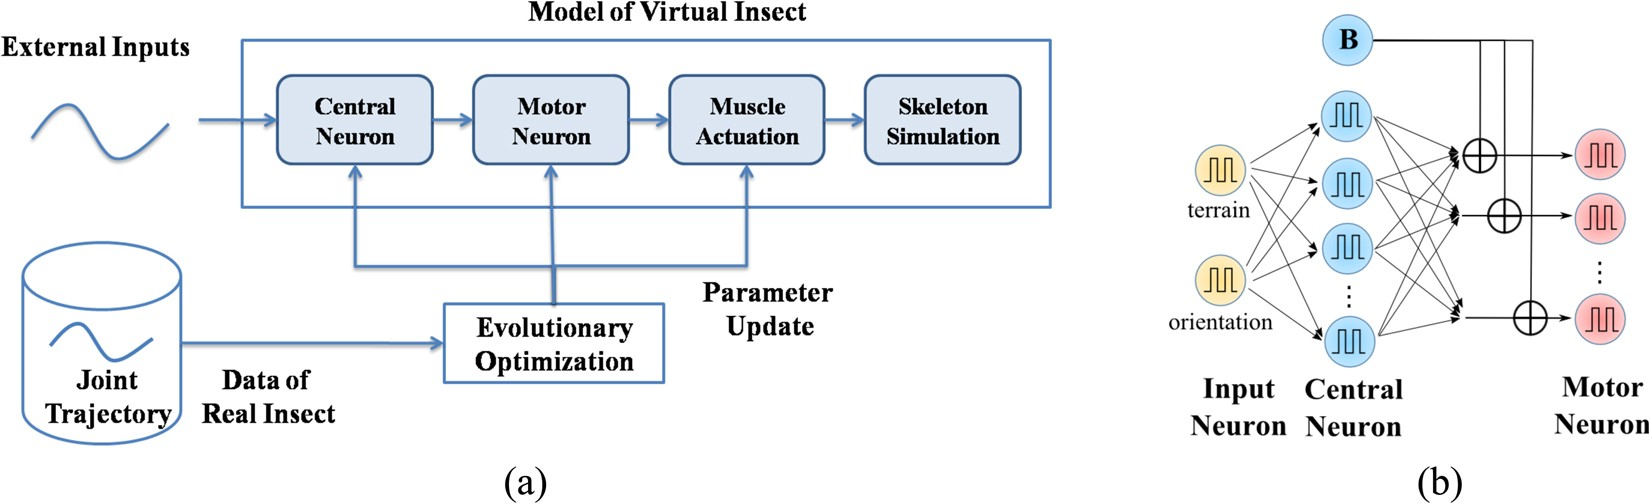 A Neuro Musculo Skeletal Model For Insects With Data Driven